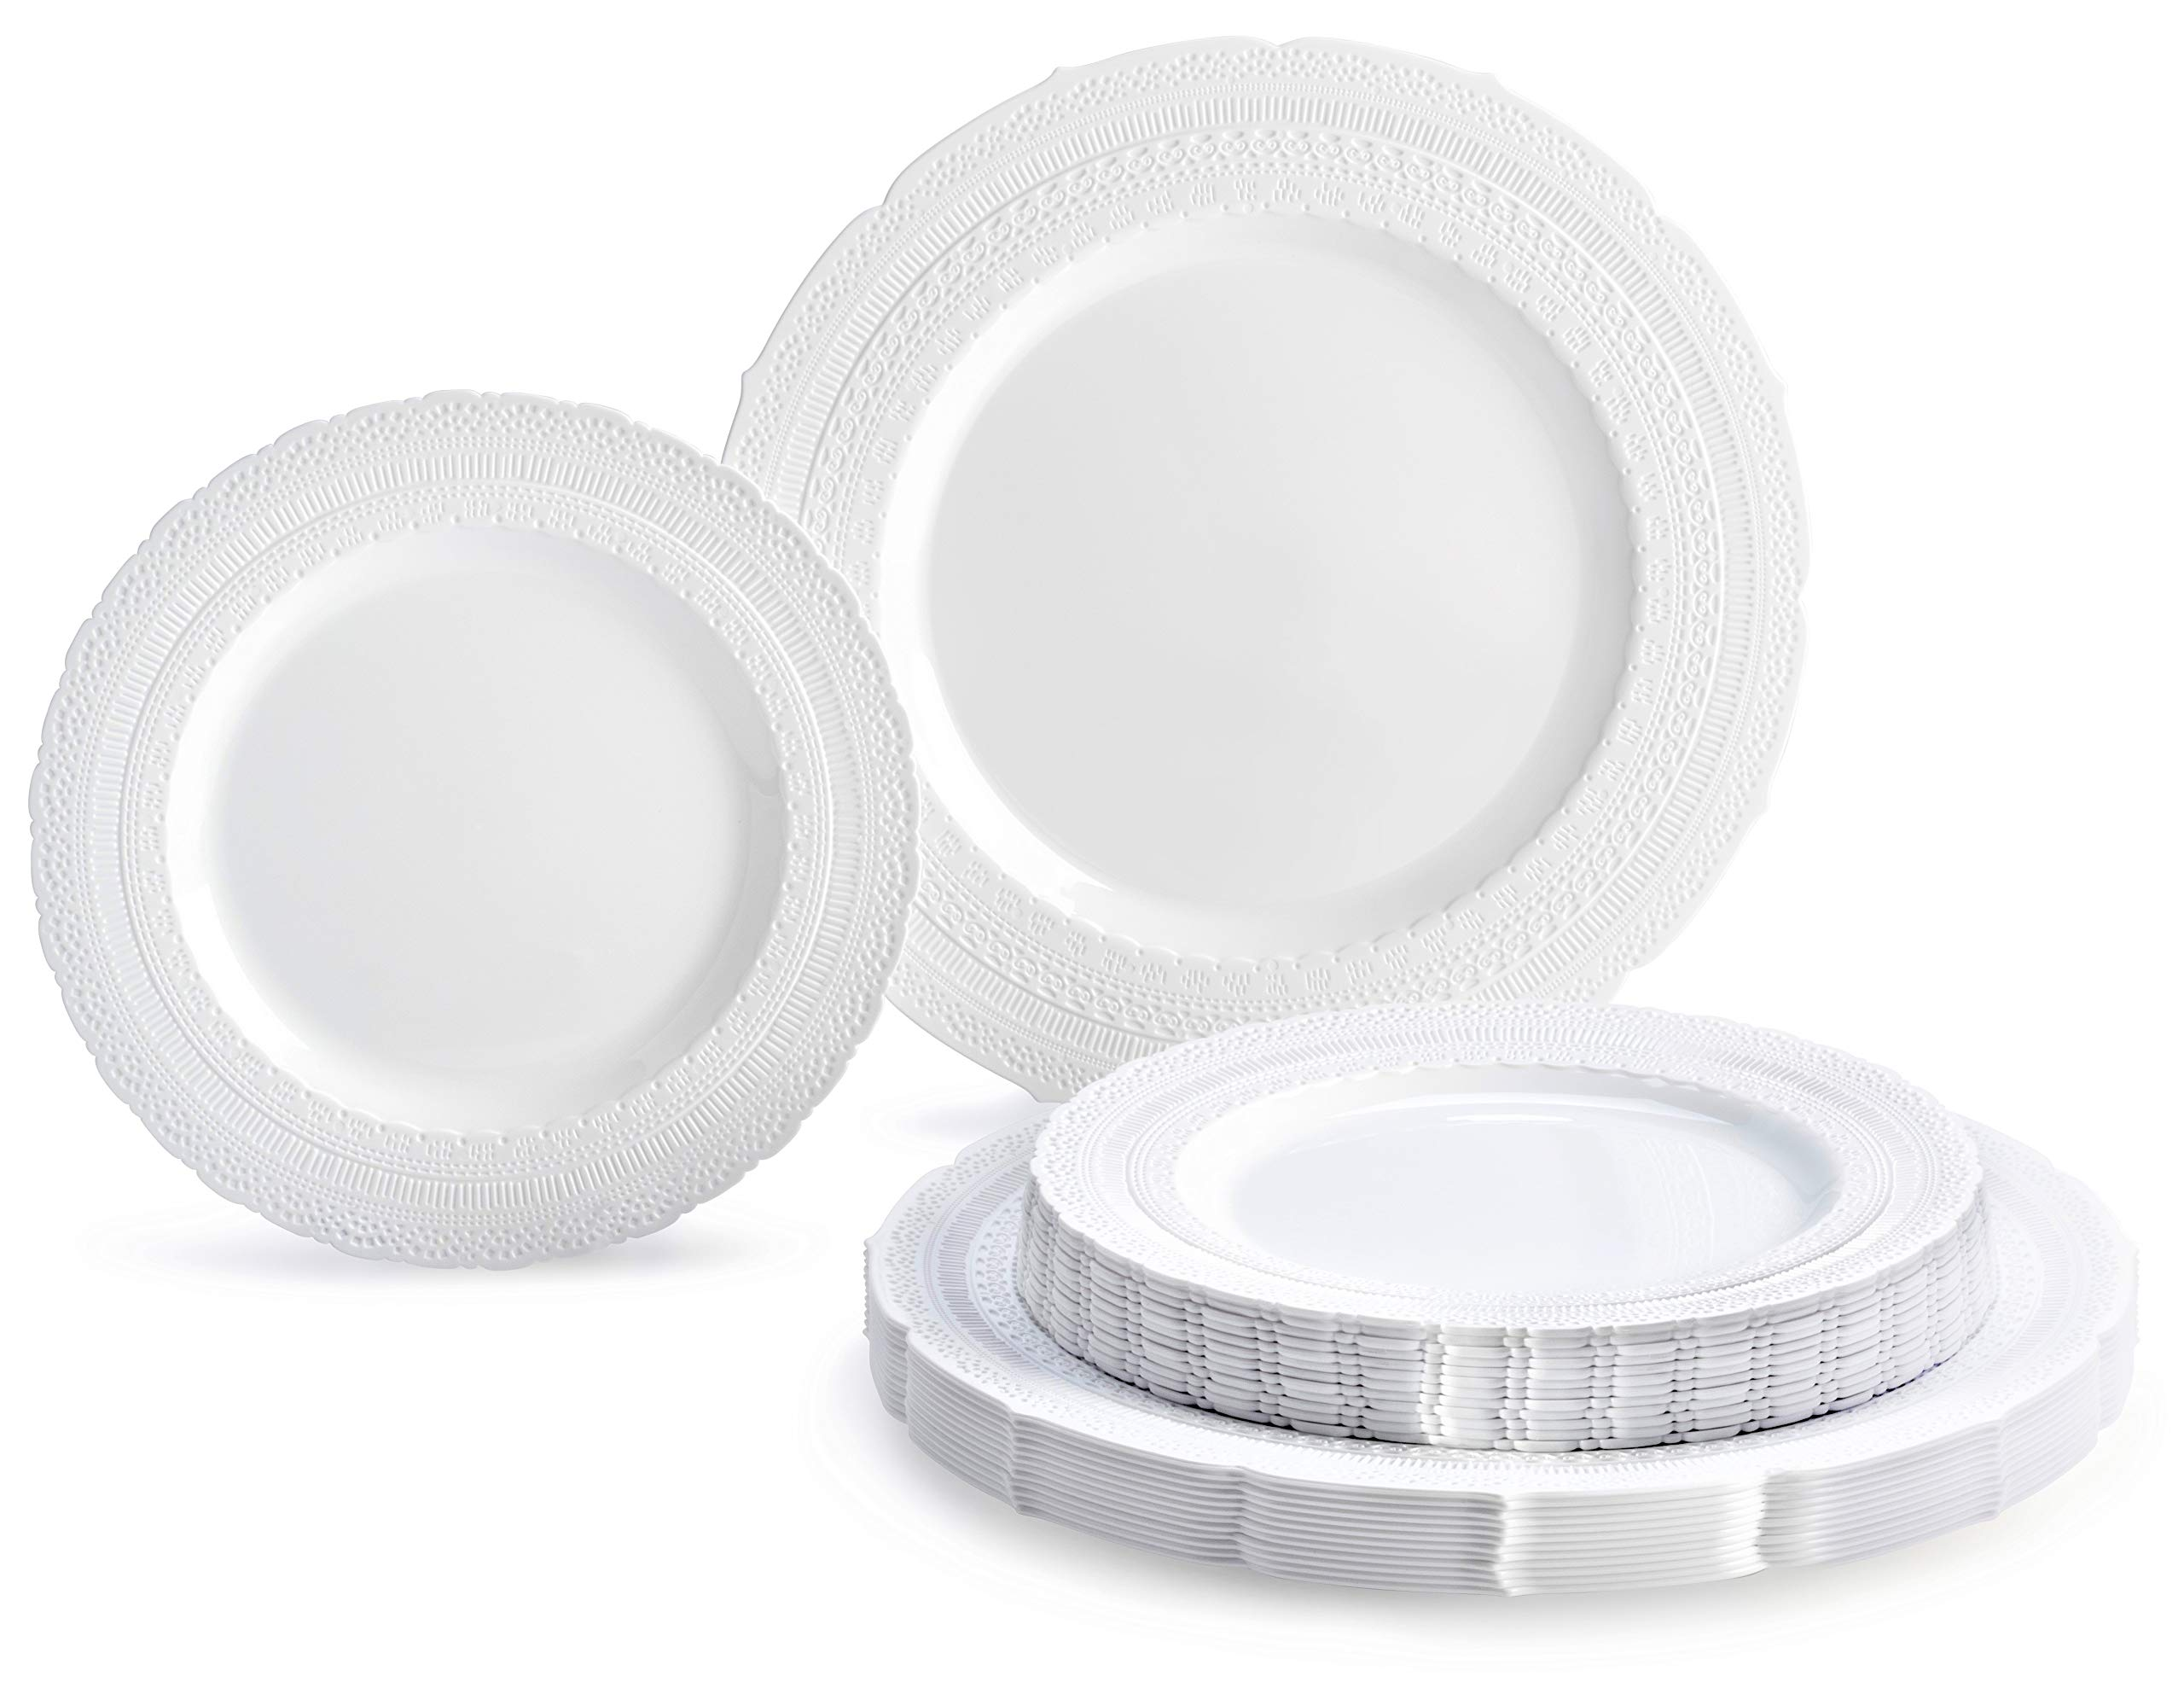 '' OCCASIONS'' 240 PACK Extra Heavyweight Vintage Wedding Party Disposable Plastic Plates Set - 120. x 11'' Dinner + 120 x 8.25'' Salad/Dessert Plate (Chateau White)